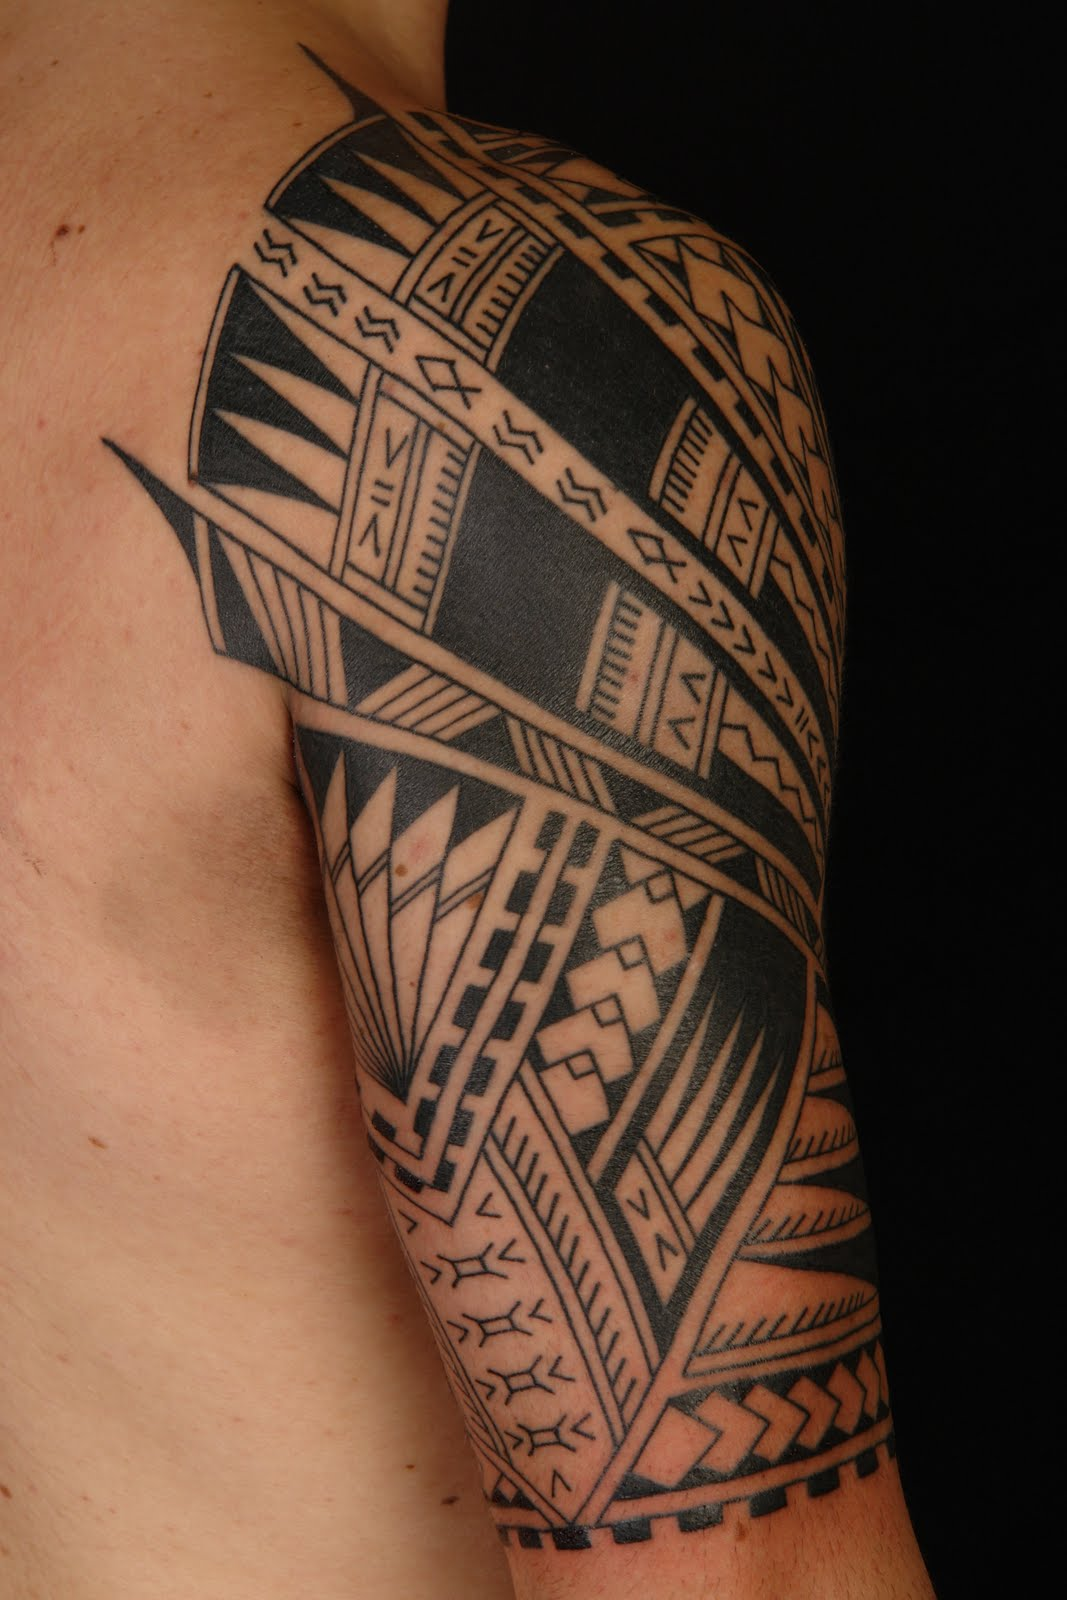 body side tribal tattoos MAORI TATTOO: POLYNESIAN Sleeve Half Samoan Polynesian Tattoo